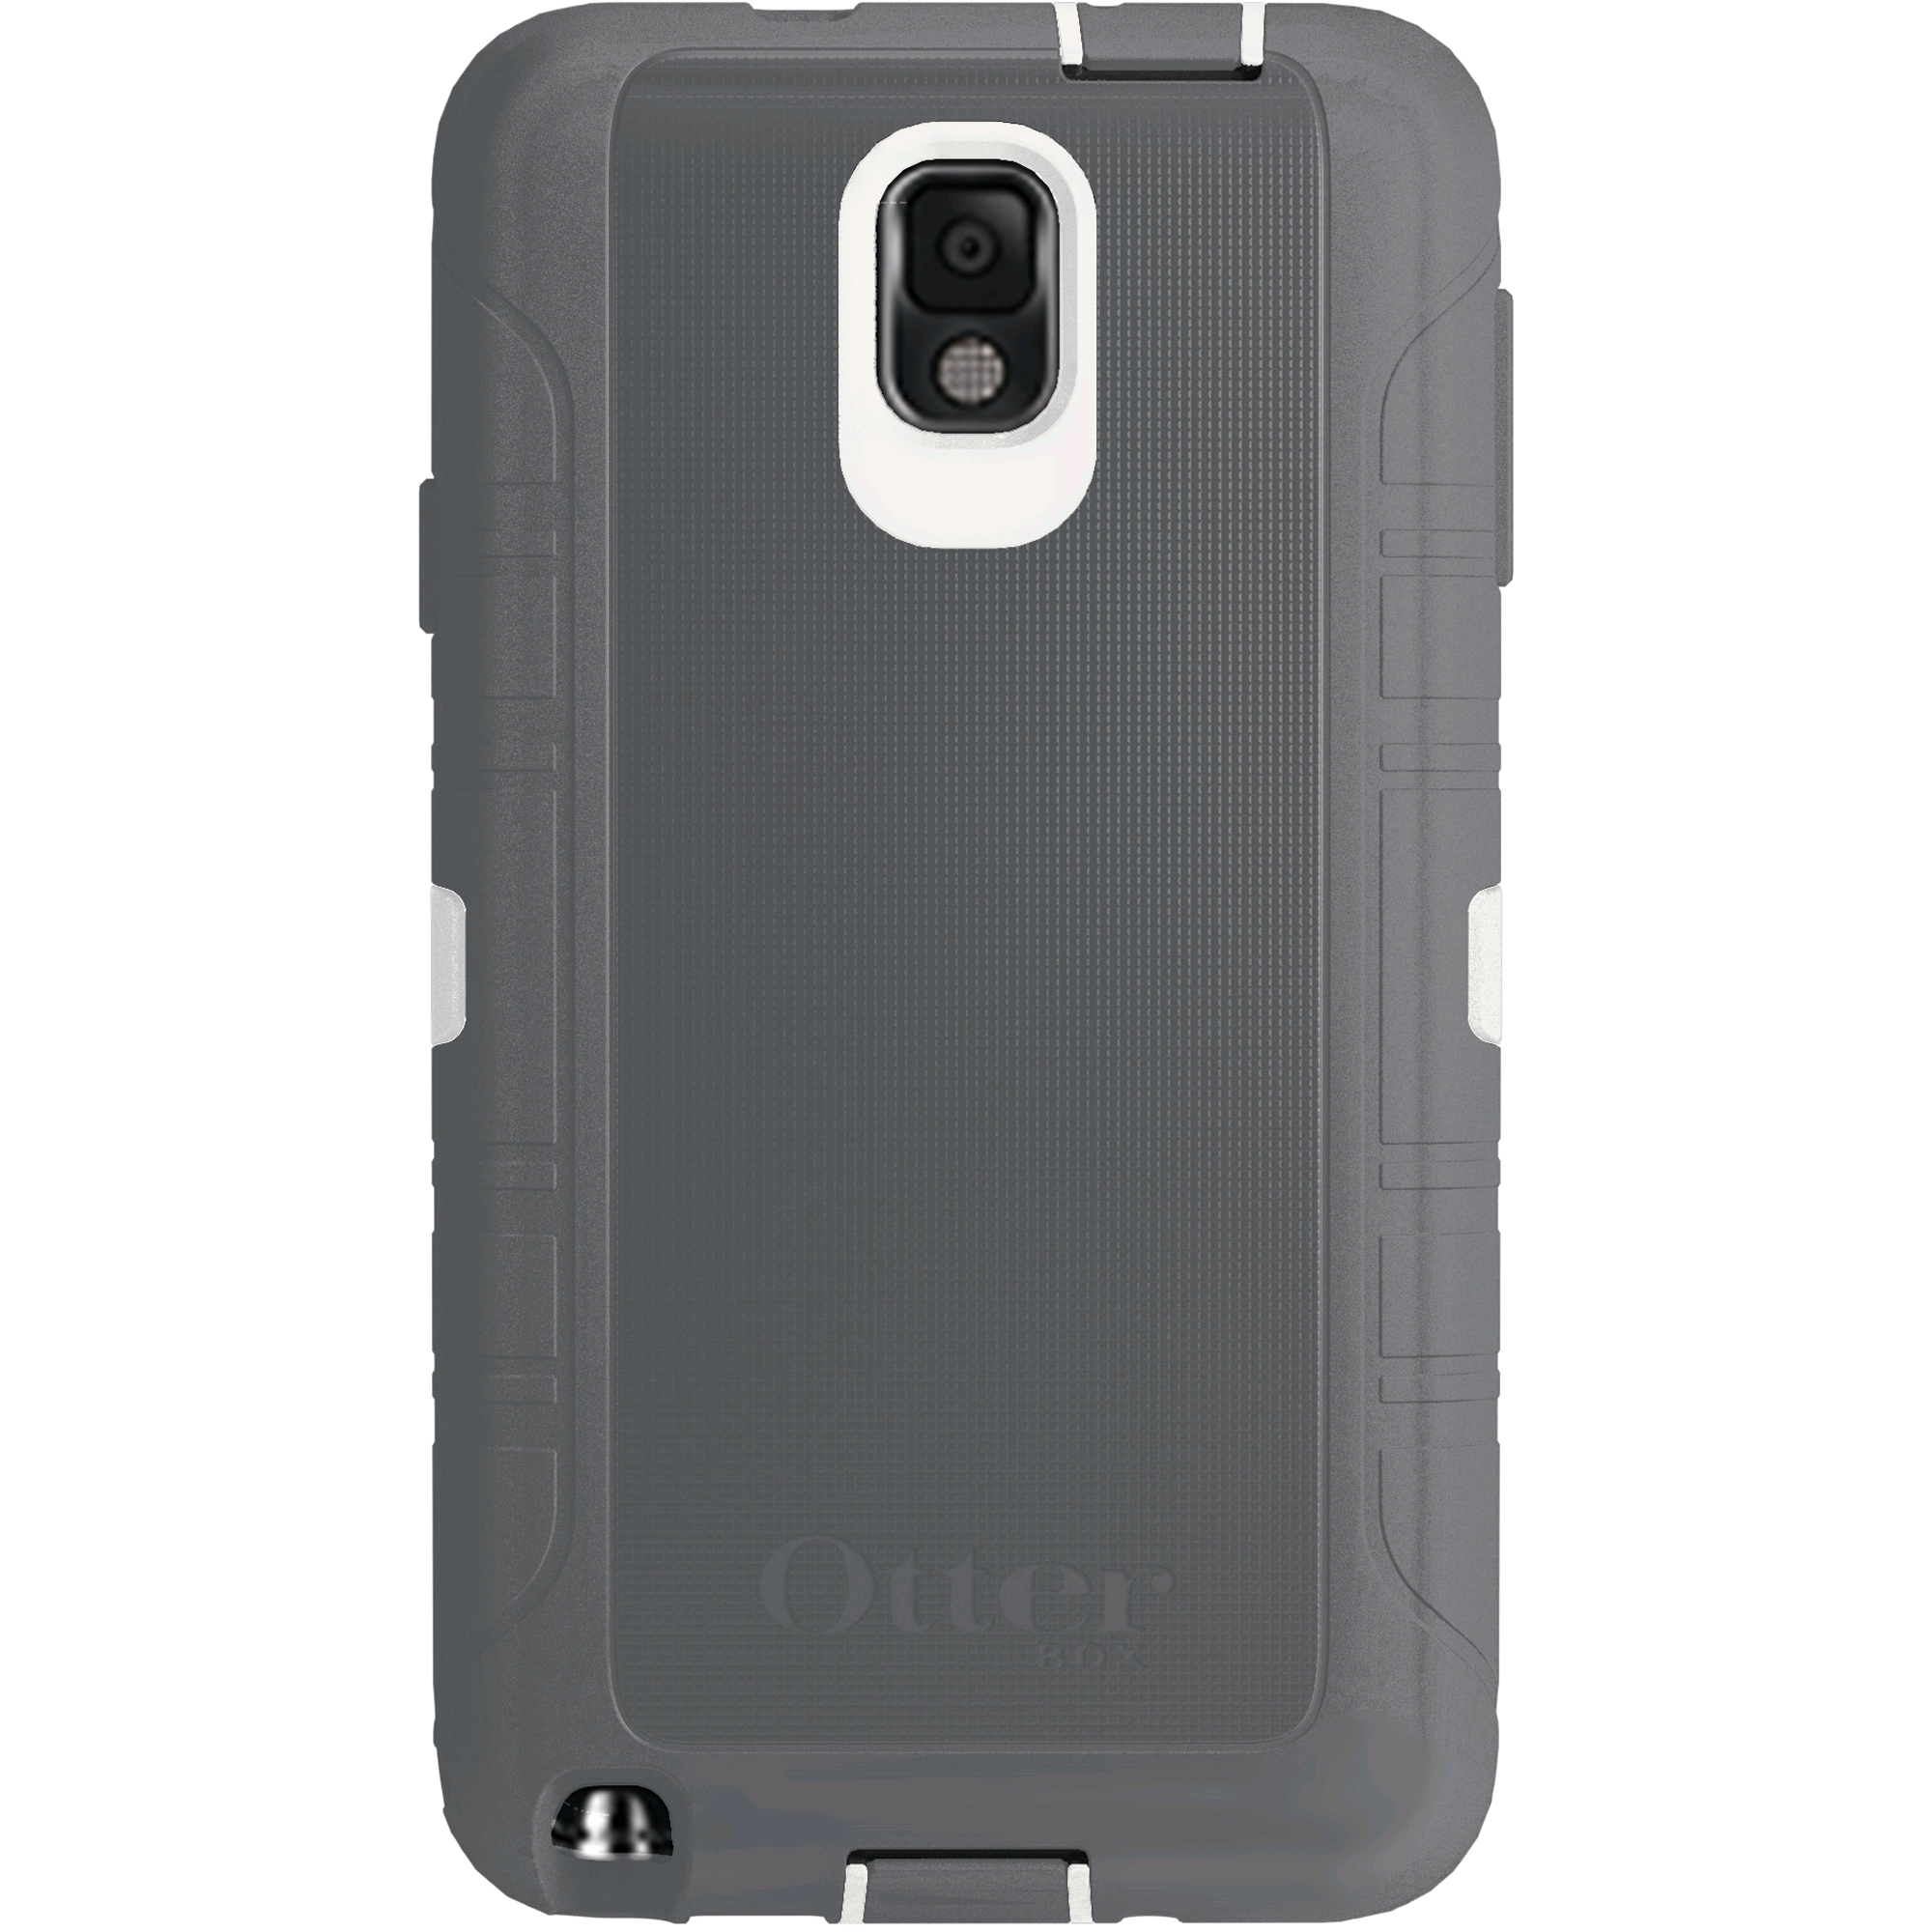 new styles b0deb f12ef OtterBox Defender case for Samsung Galaxy Note 3 Glacier